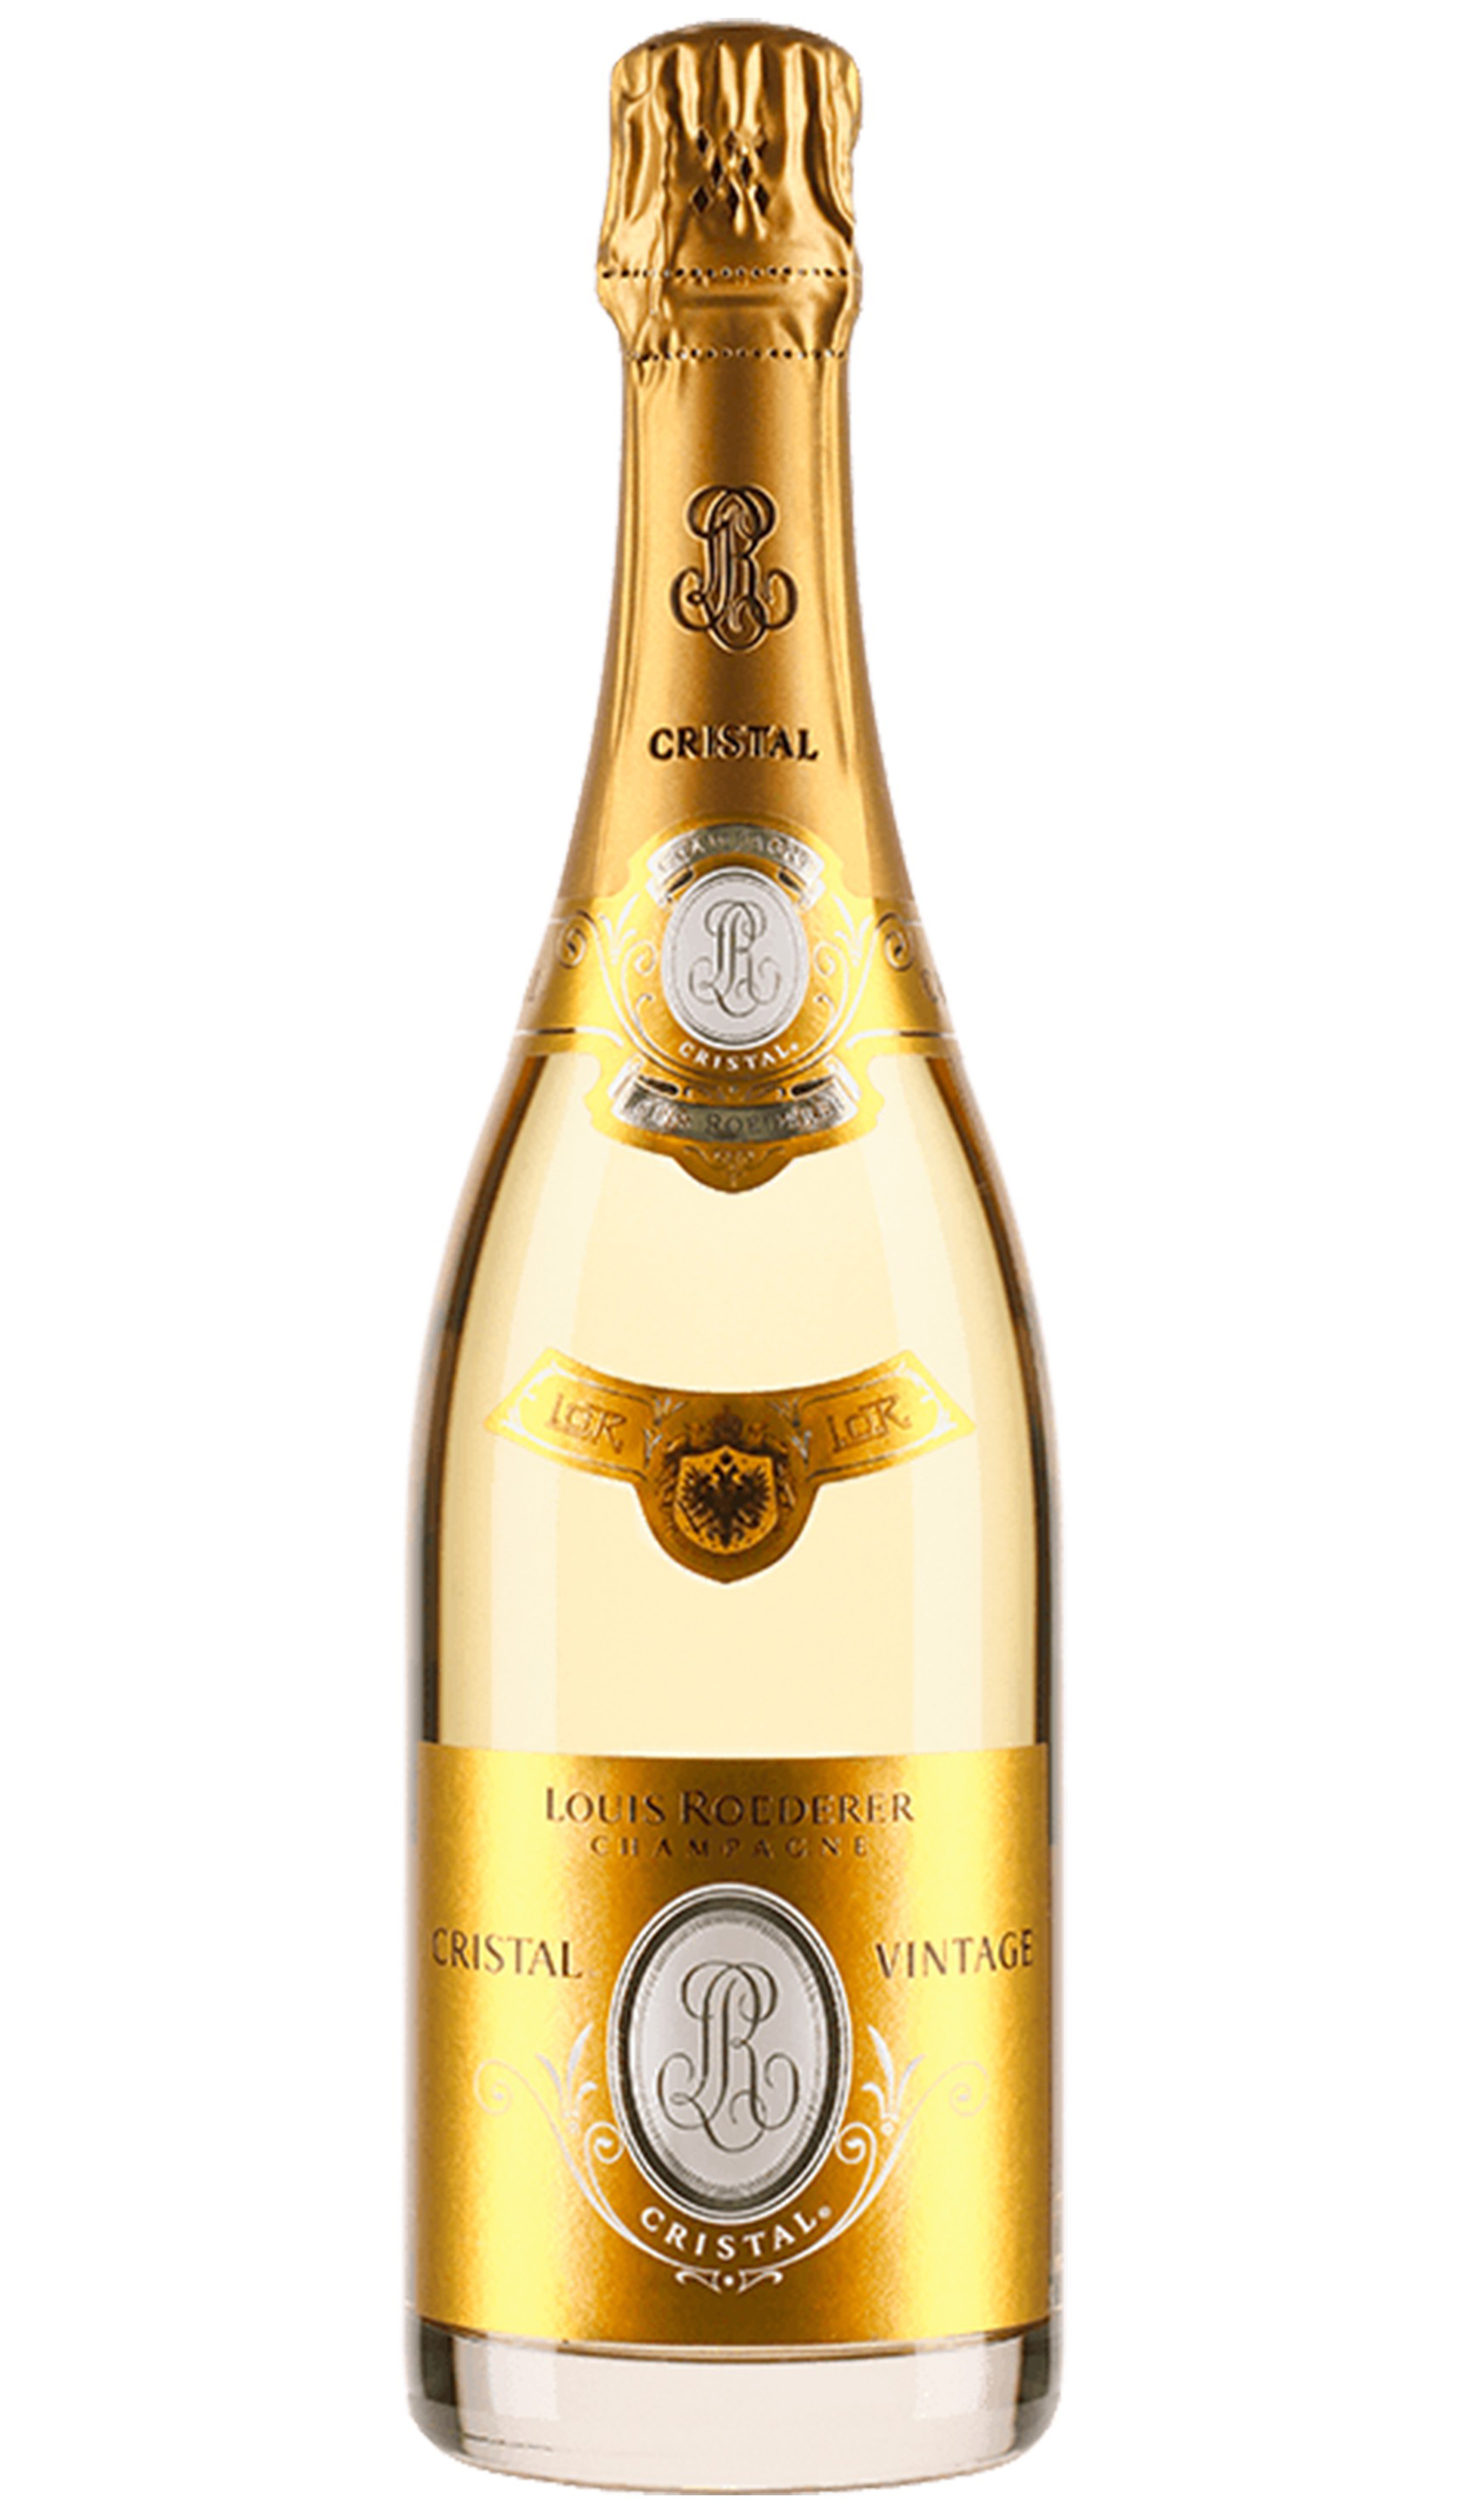 Champagne Cristal, 2008